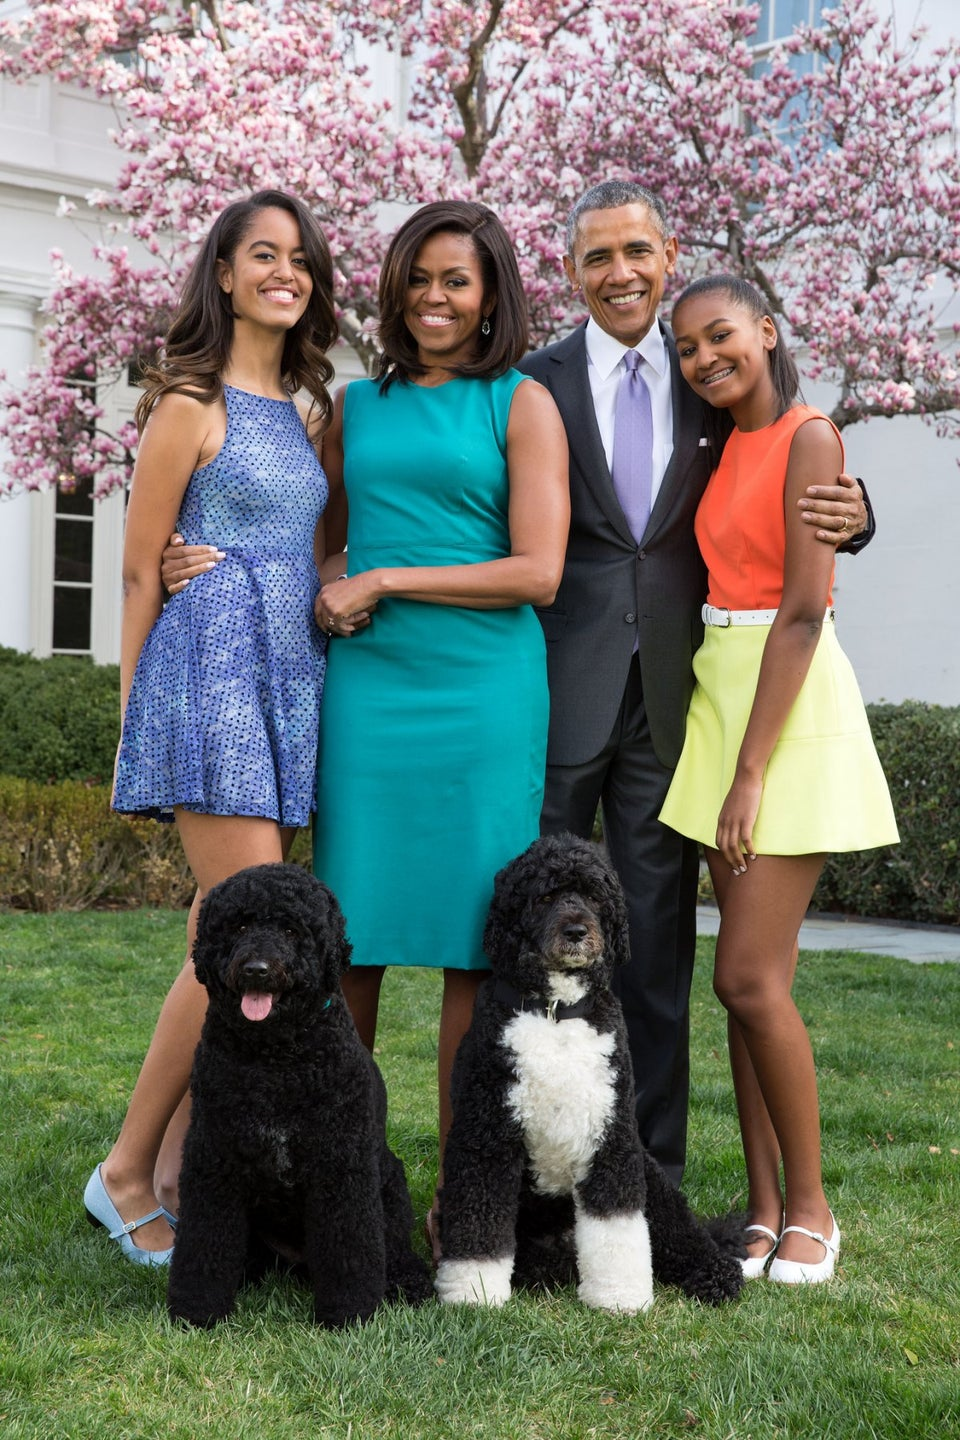 Take a Look Inside the Obamas' Gorgeous Post-White House Home in Washington, D.C.